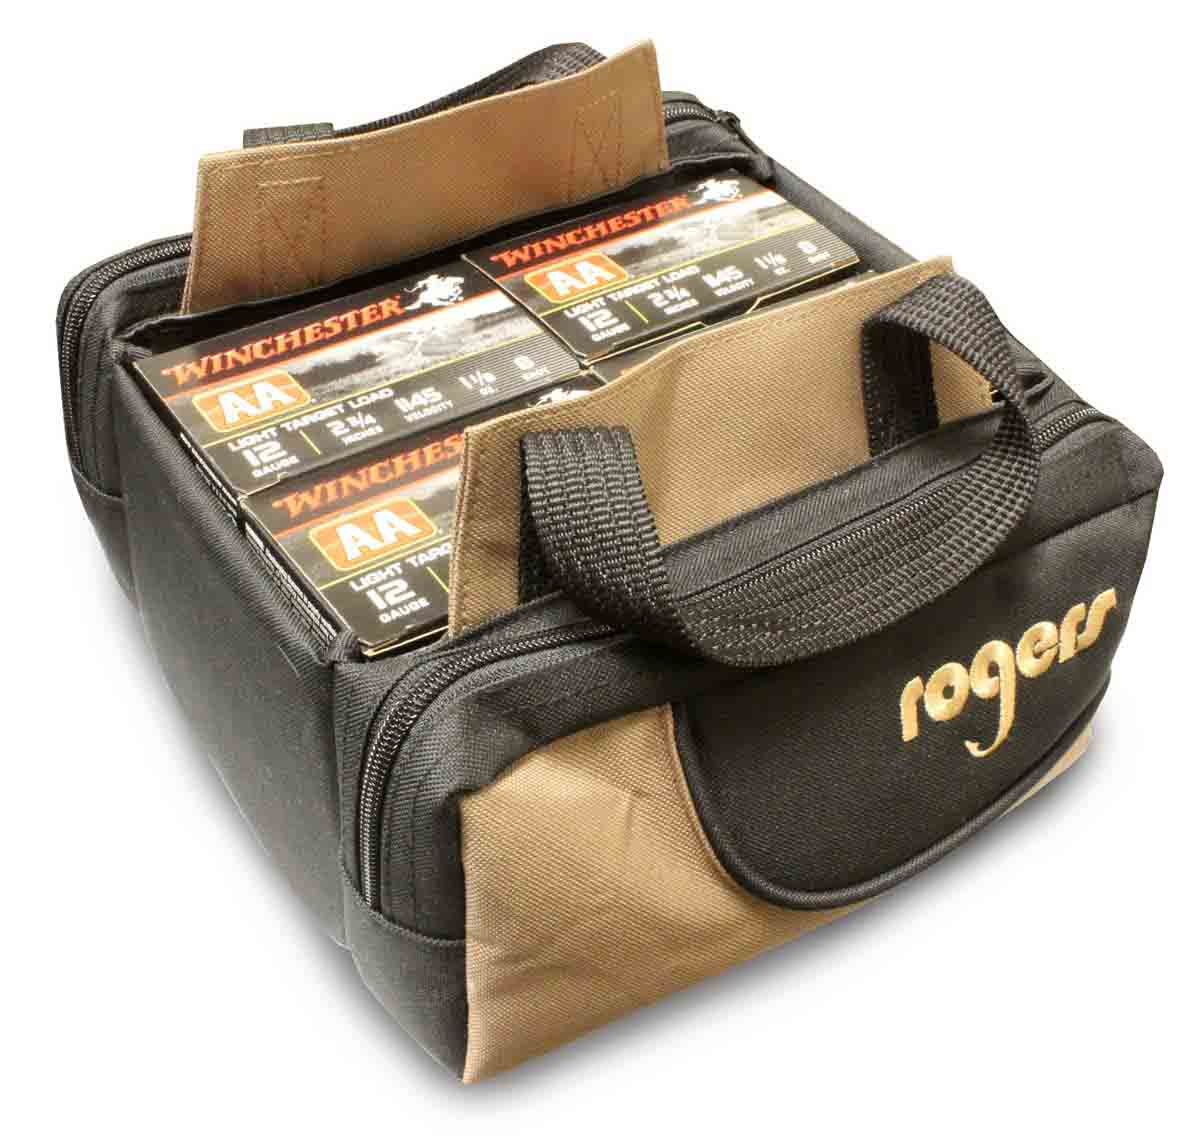 Rogers Trap Shooters 4-Box Shell Pouch_1.jpg